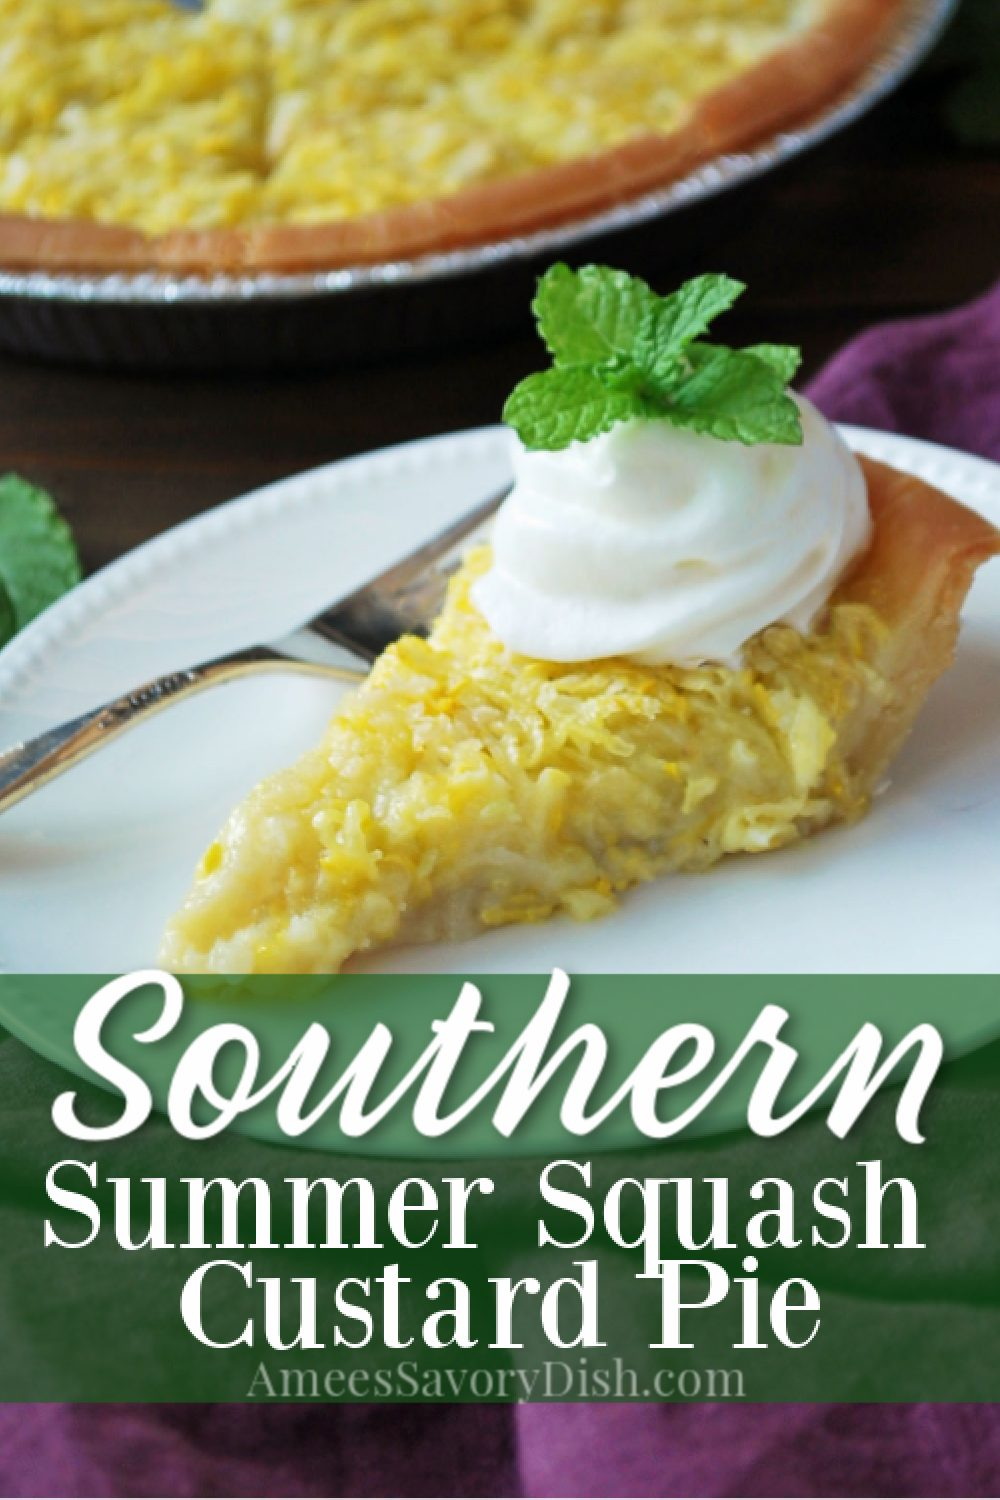 Summer squash pie a custard-based pie made with yellow squash, unsweetened coconut, eggs, butter, vanilla, and flour.  This southern summer pie recipe is sweet, creamy, and full of flavor. #summerpie #summerdessert #pierecipe #squashpie #yellowsquashpie via @Ameessavorydish